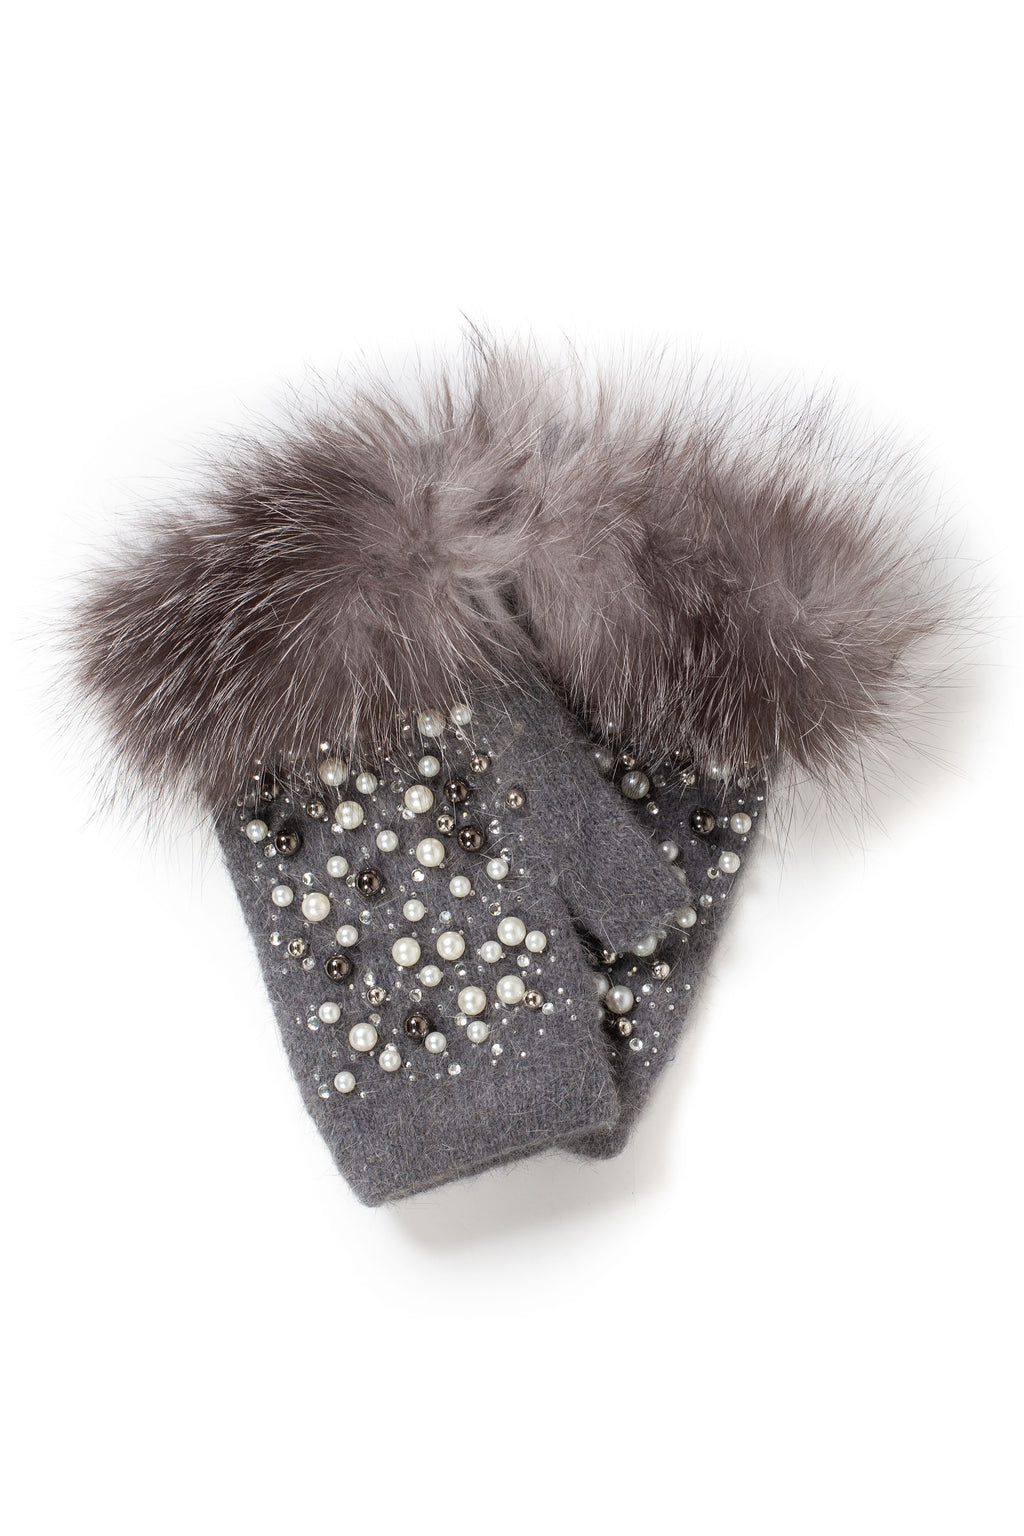 Embellished Knit Hand Warmers - honey